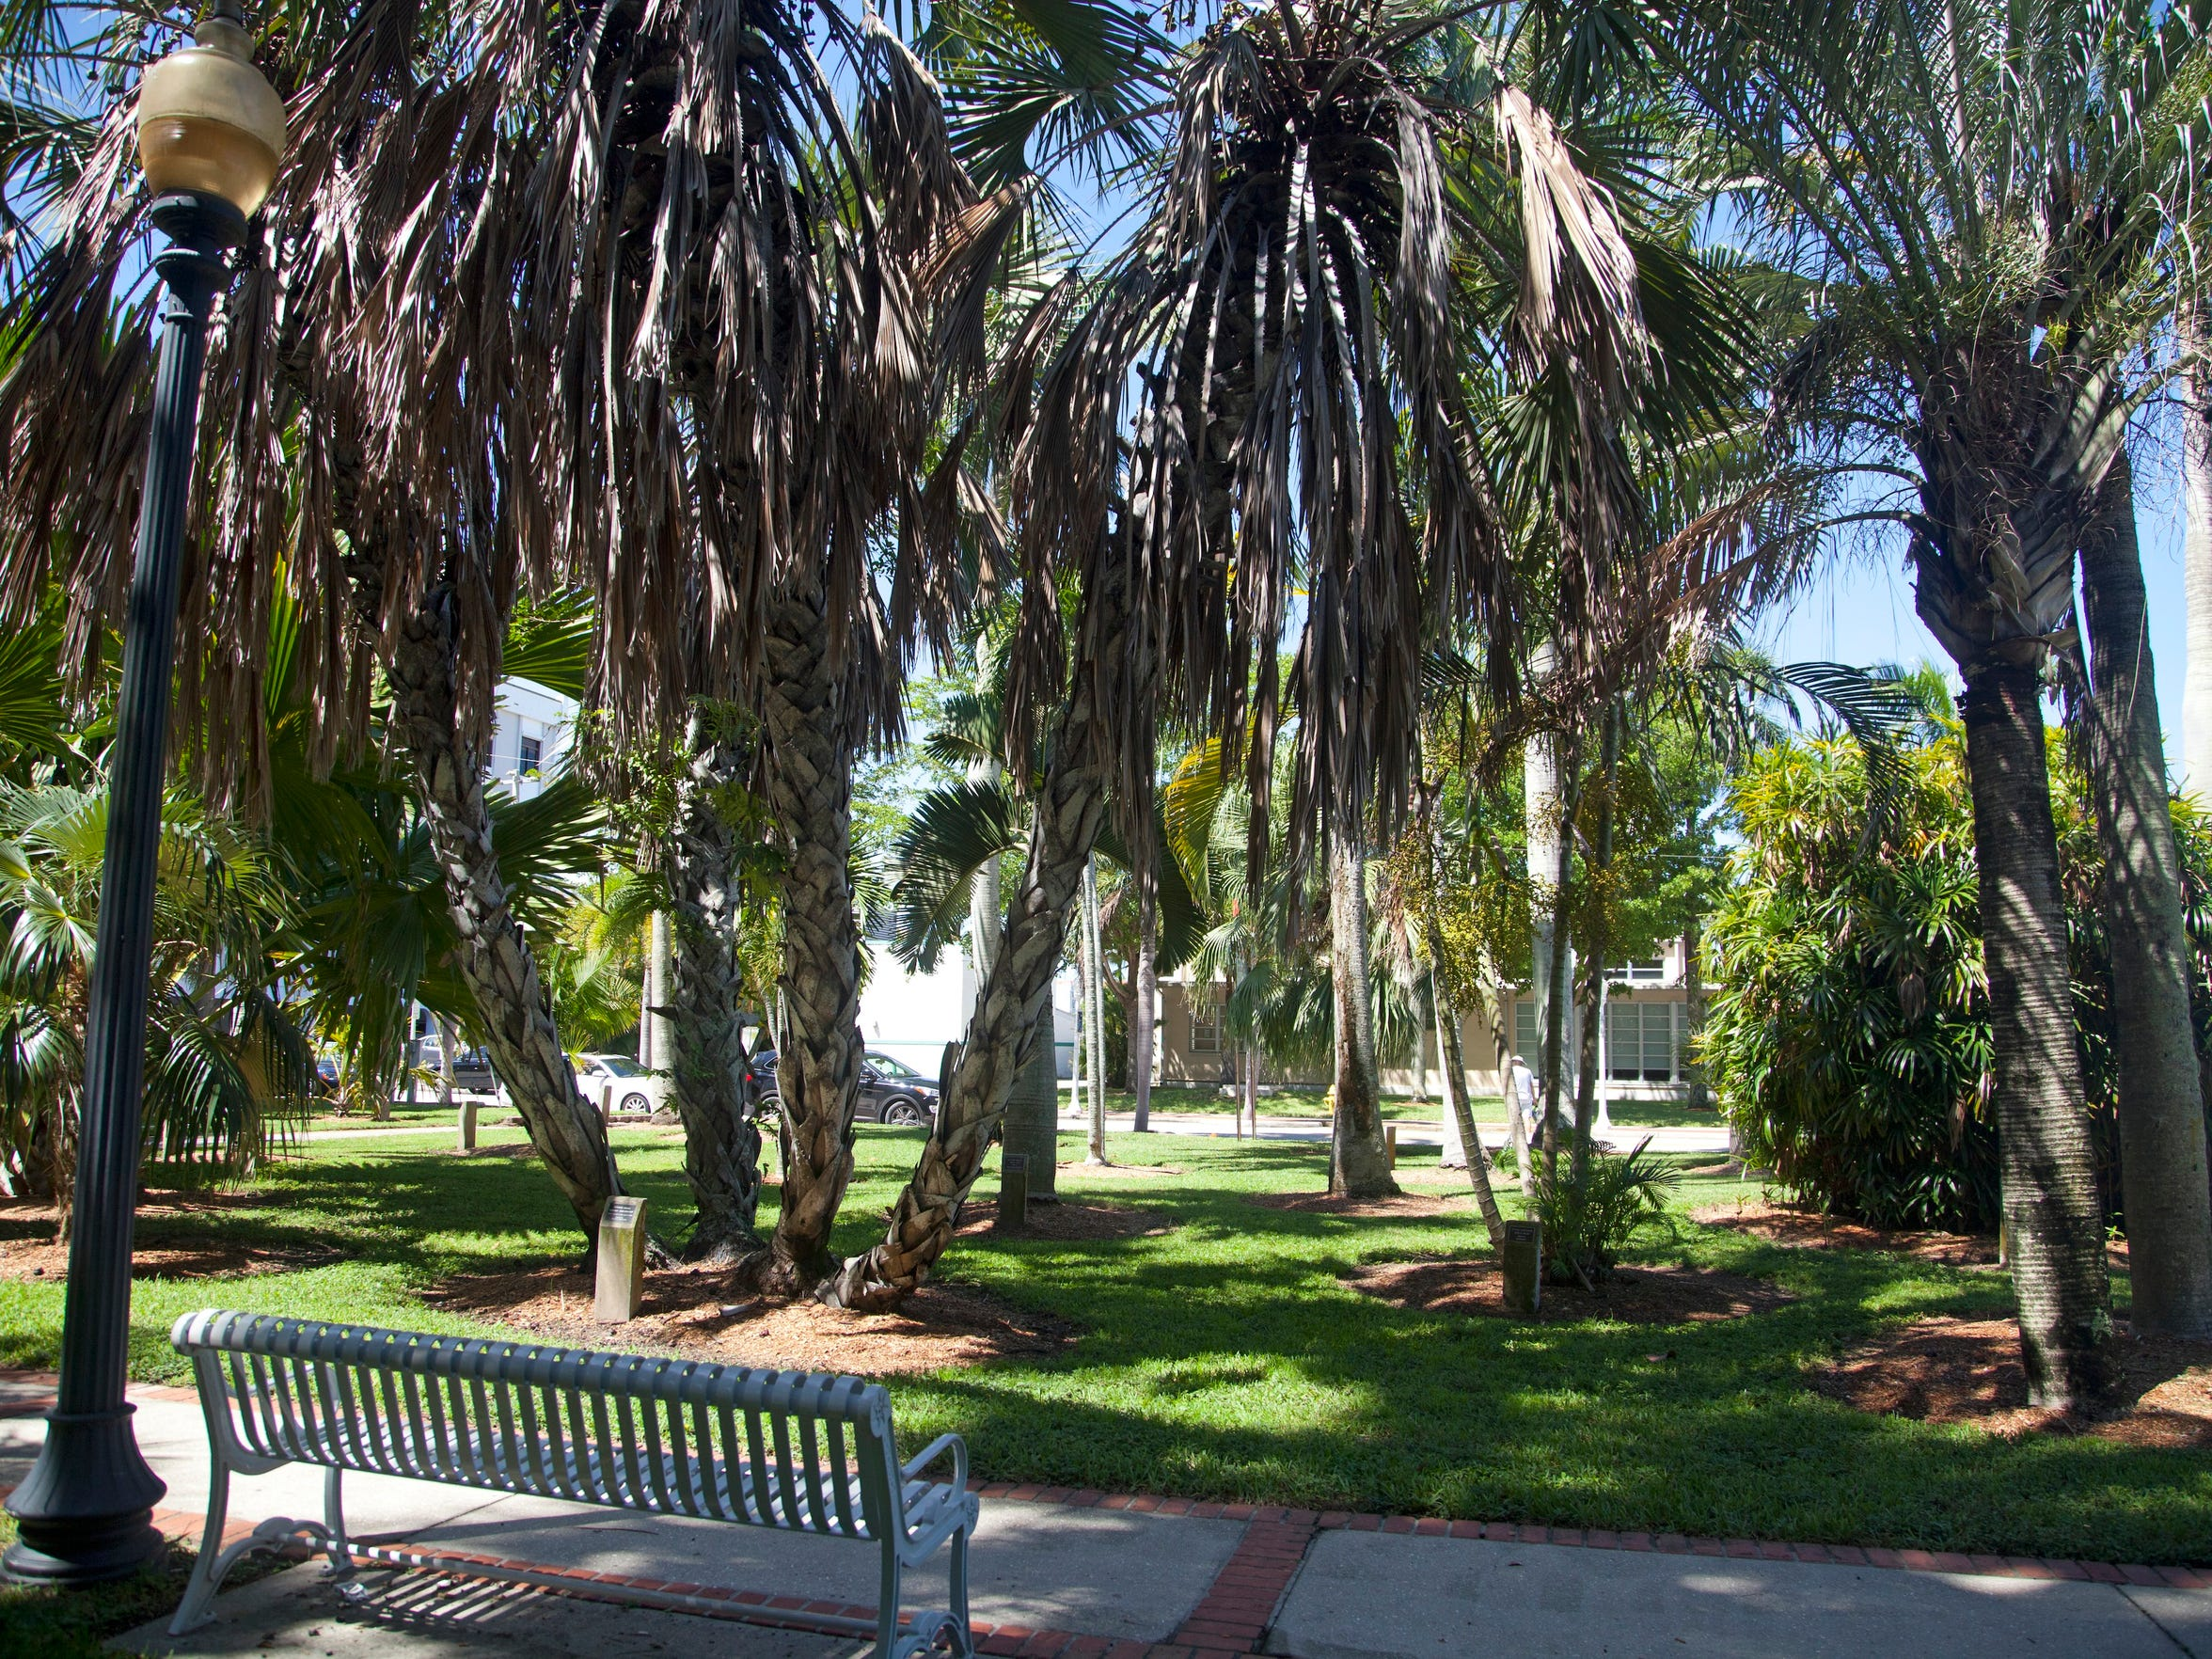 The palm park at Lee Street and Edwards would grow